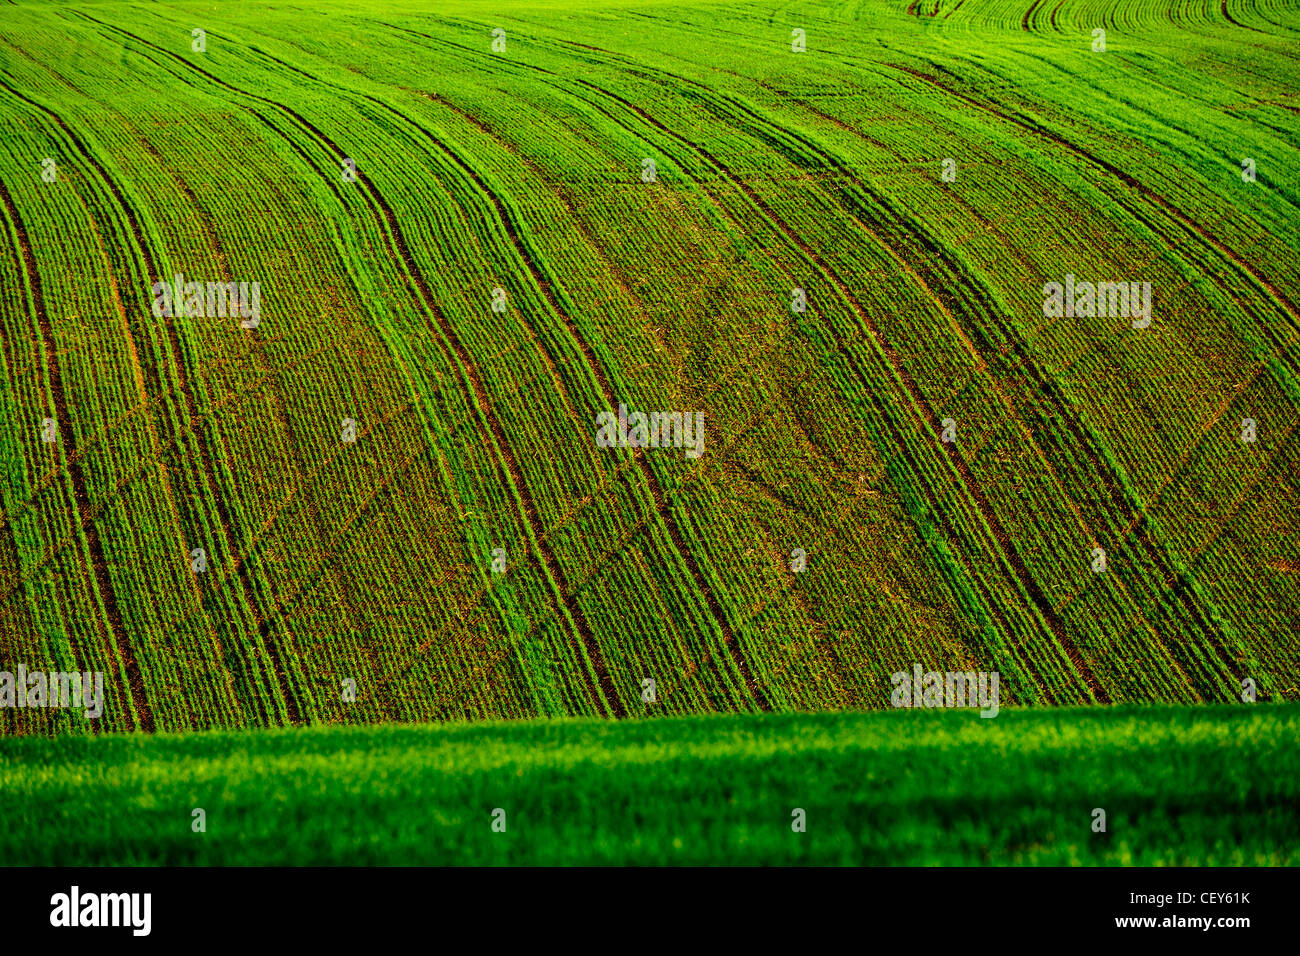 Green wheat field rows in late summer, abstract background - Stock Image